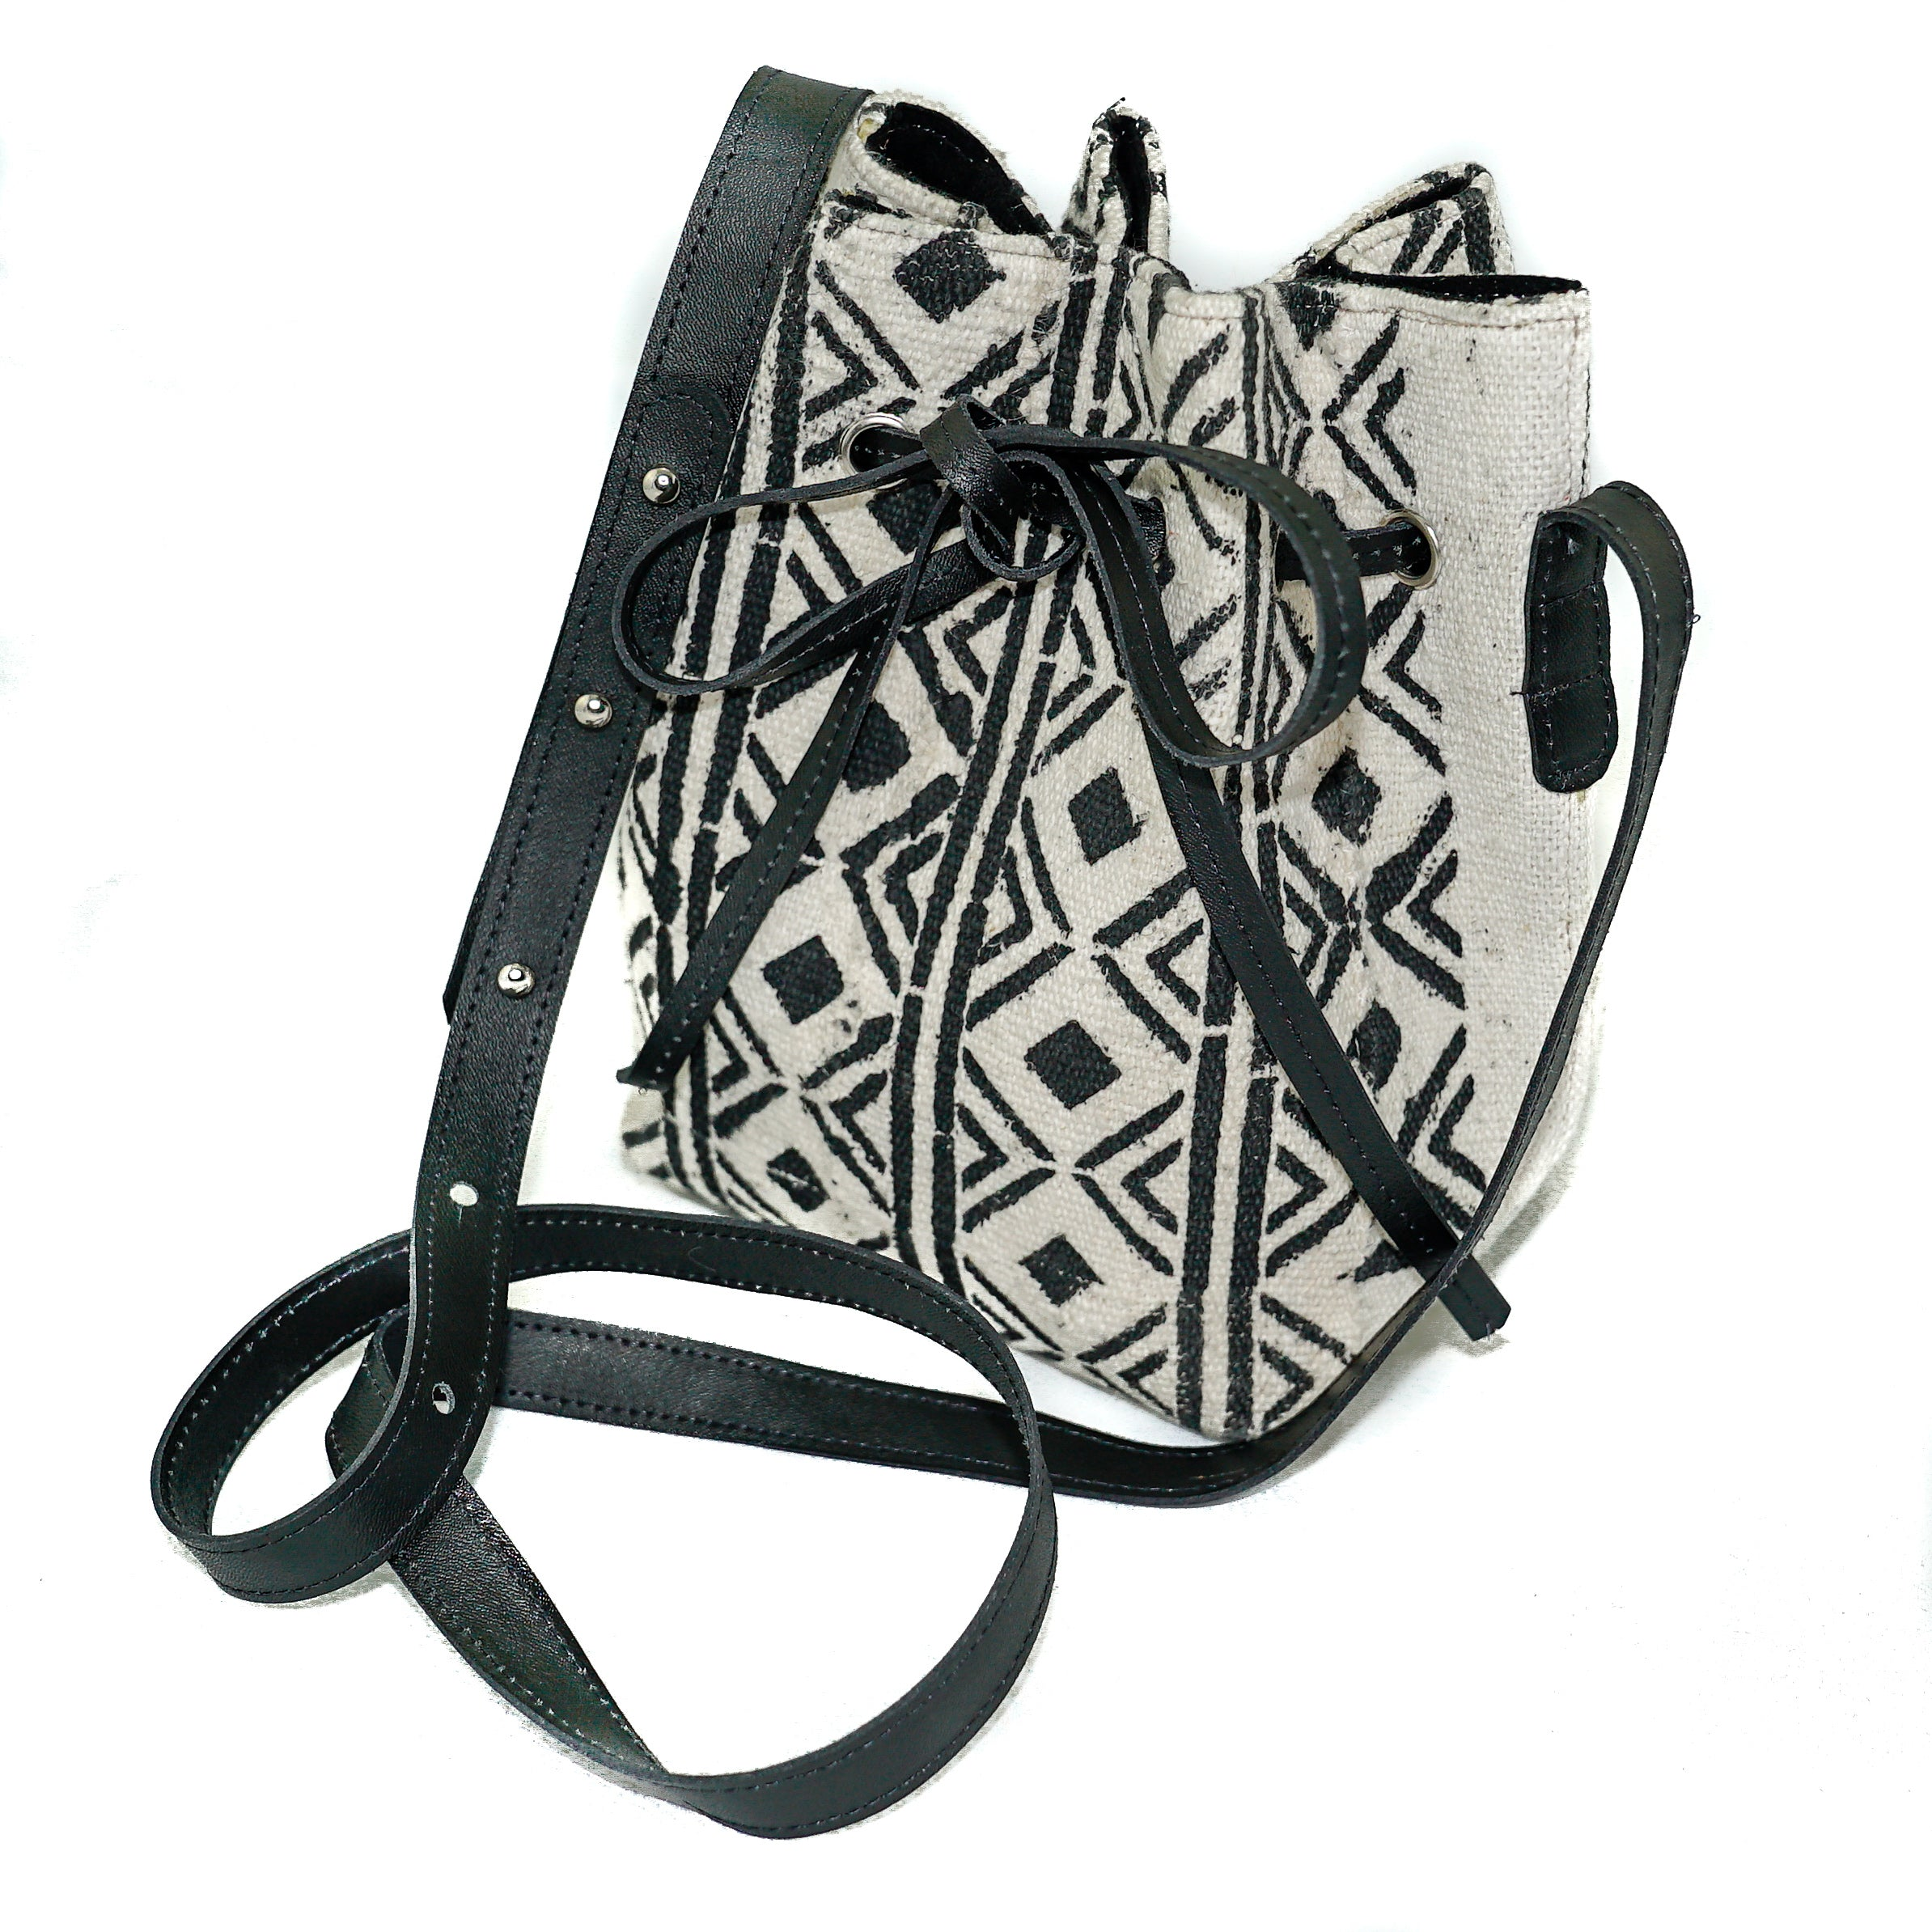 Amie bucket bag in white and black diamond bogolan